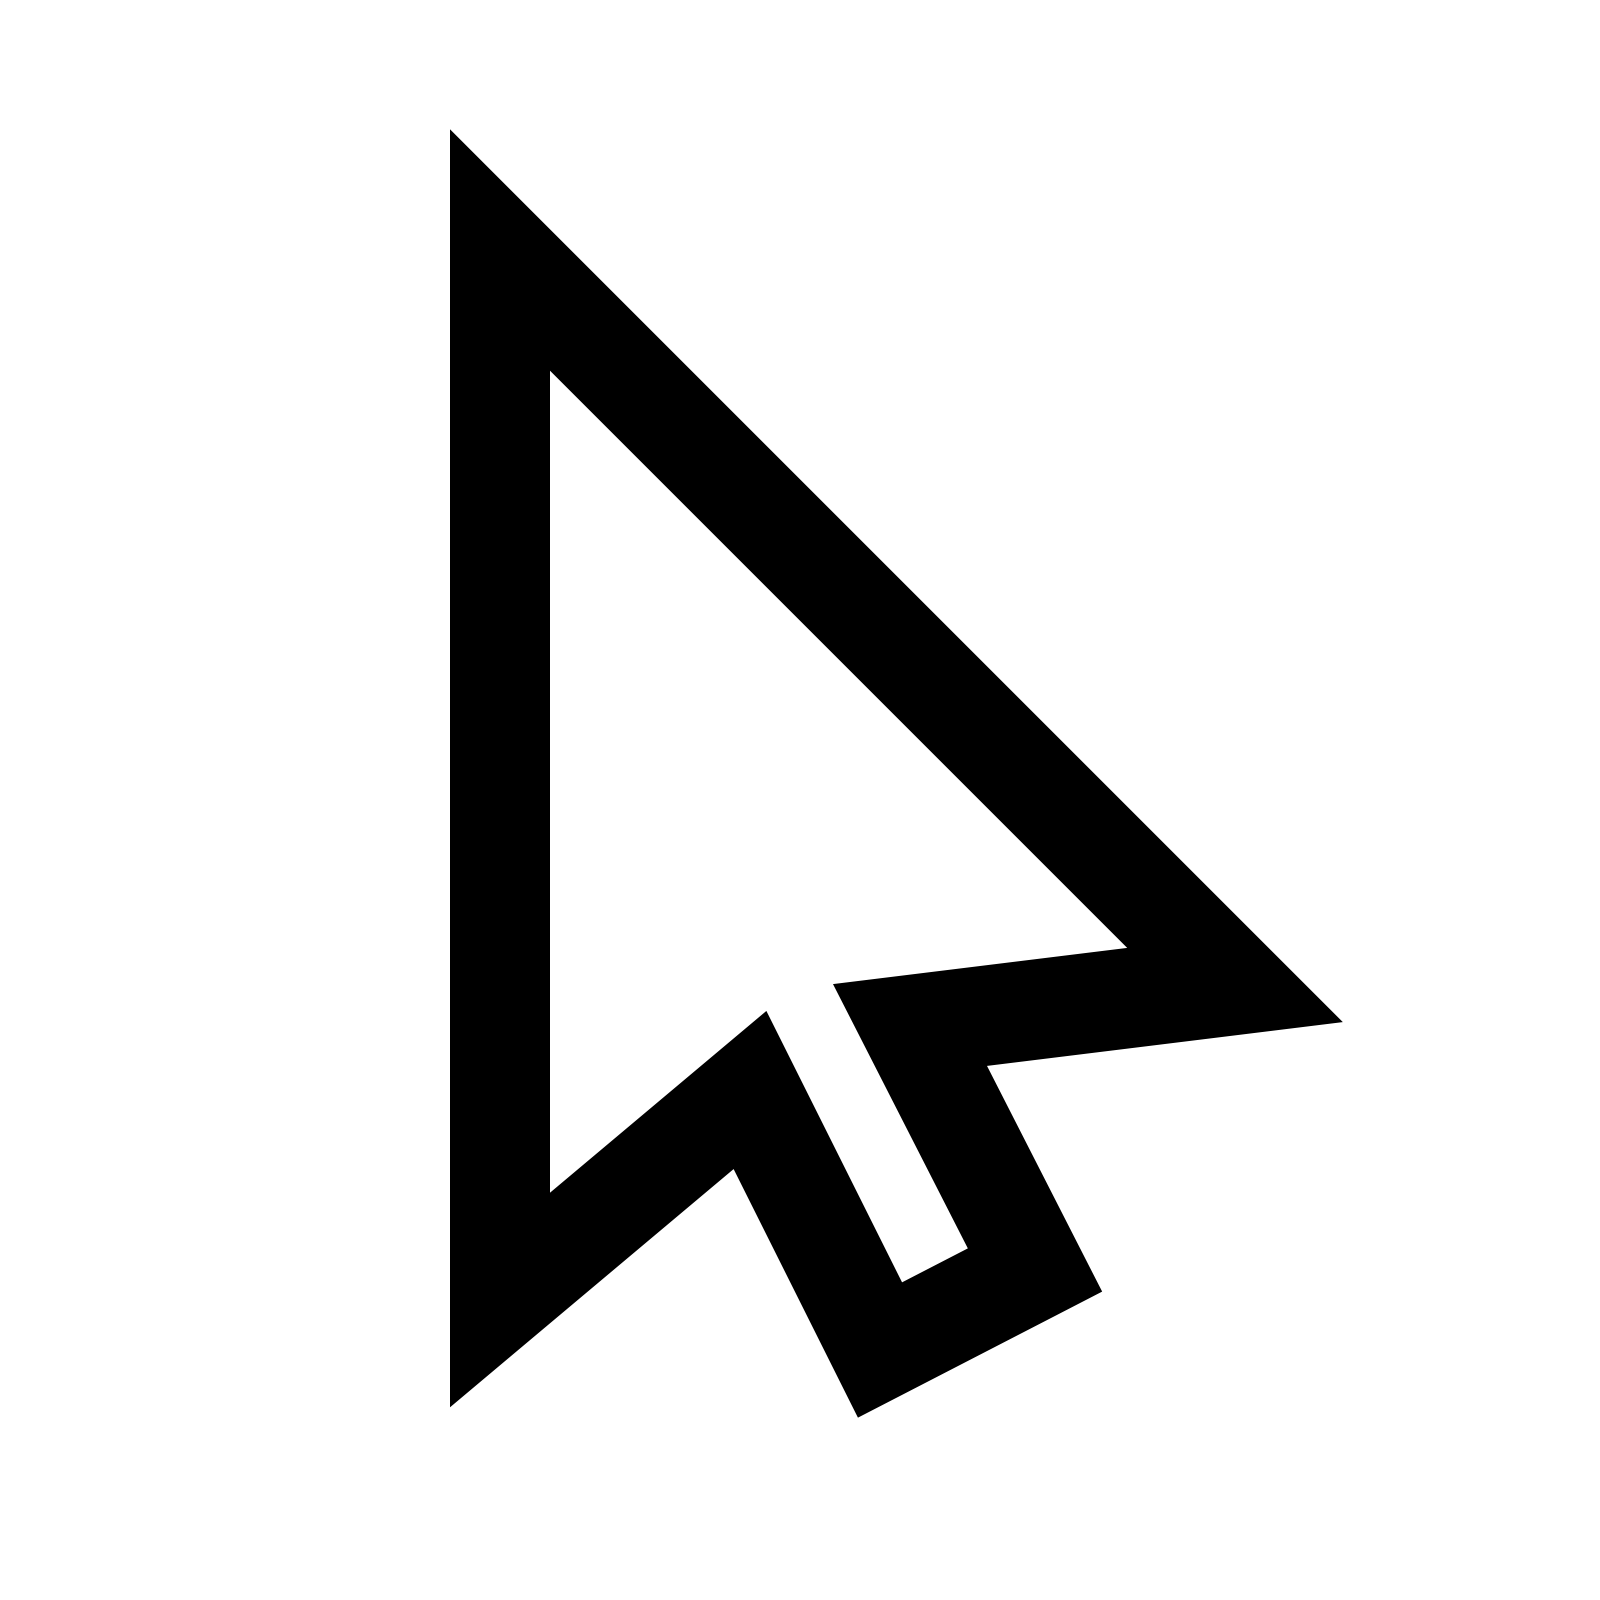 Cursor Icon - Free Download at Icons8